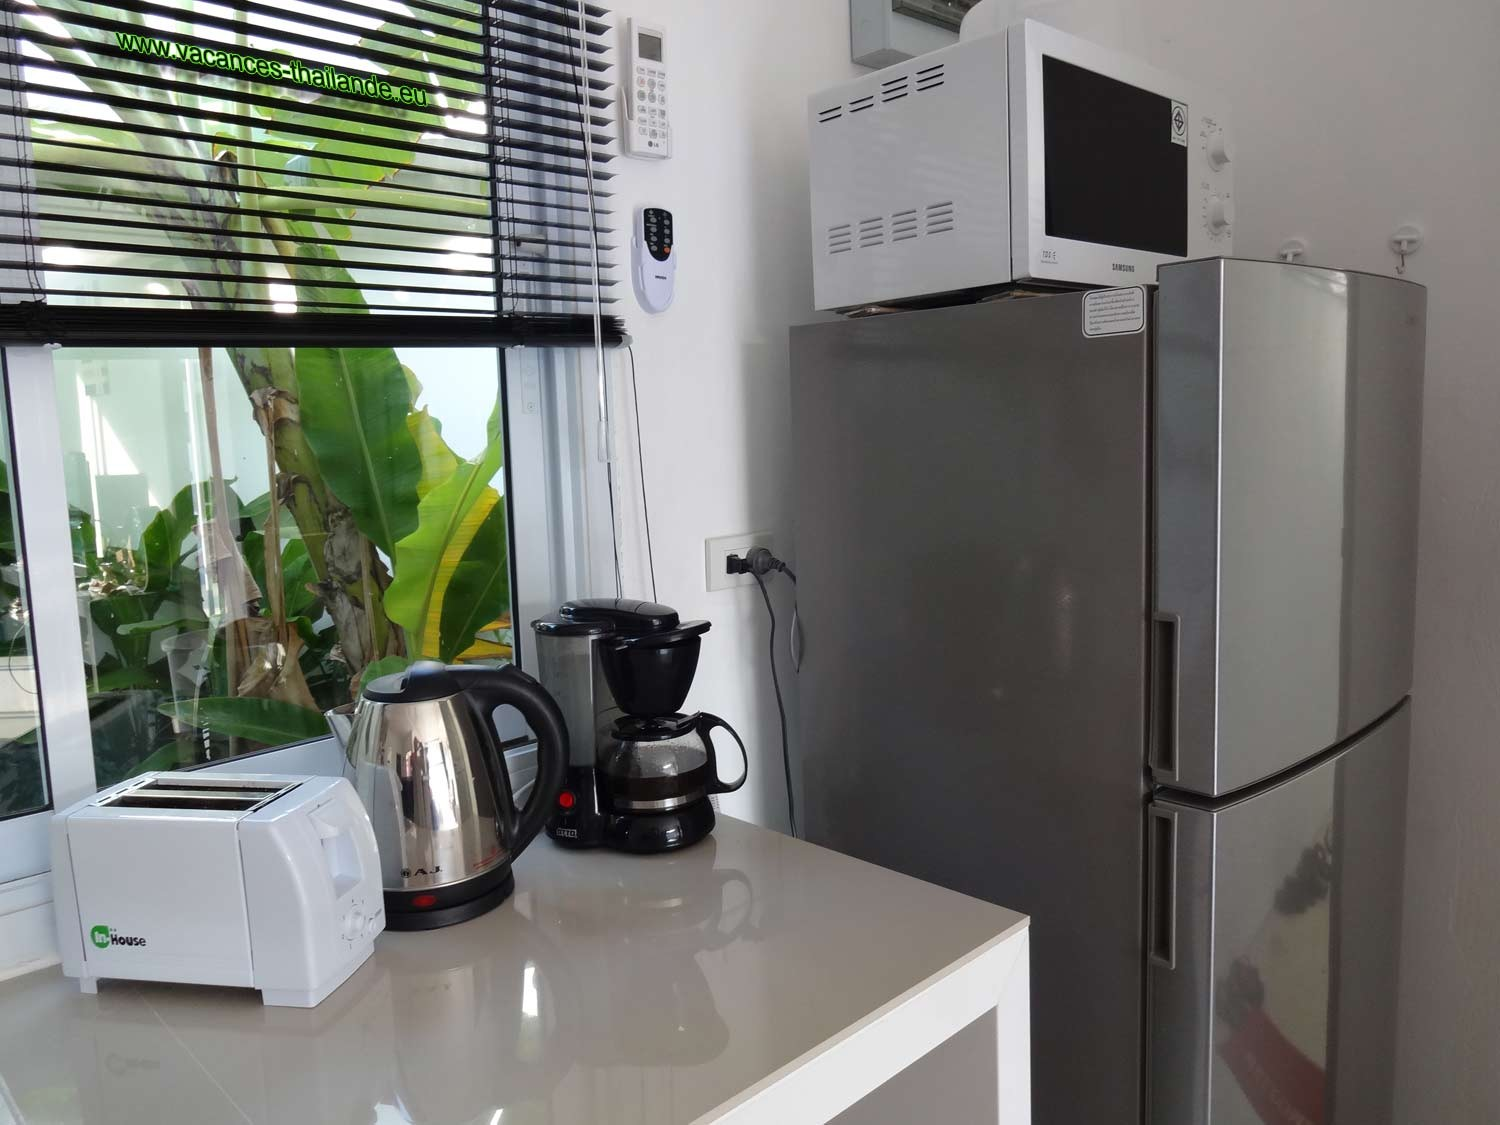 Photo 34 english center pin equipped kitchen electric stove, microwave oven and various accessory koh samui